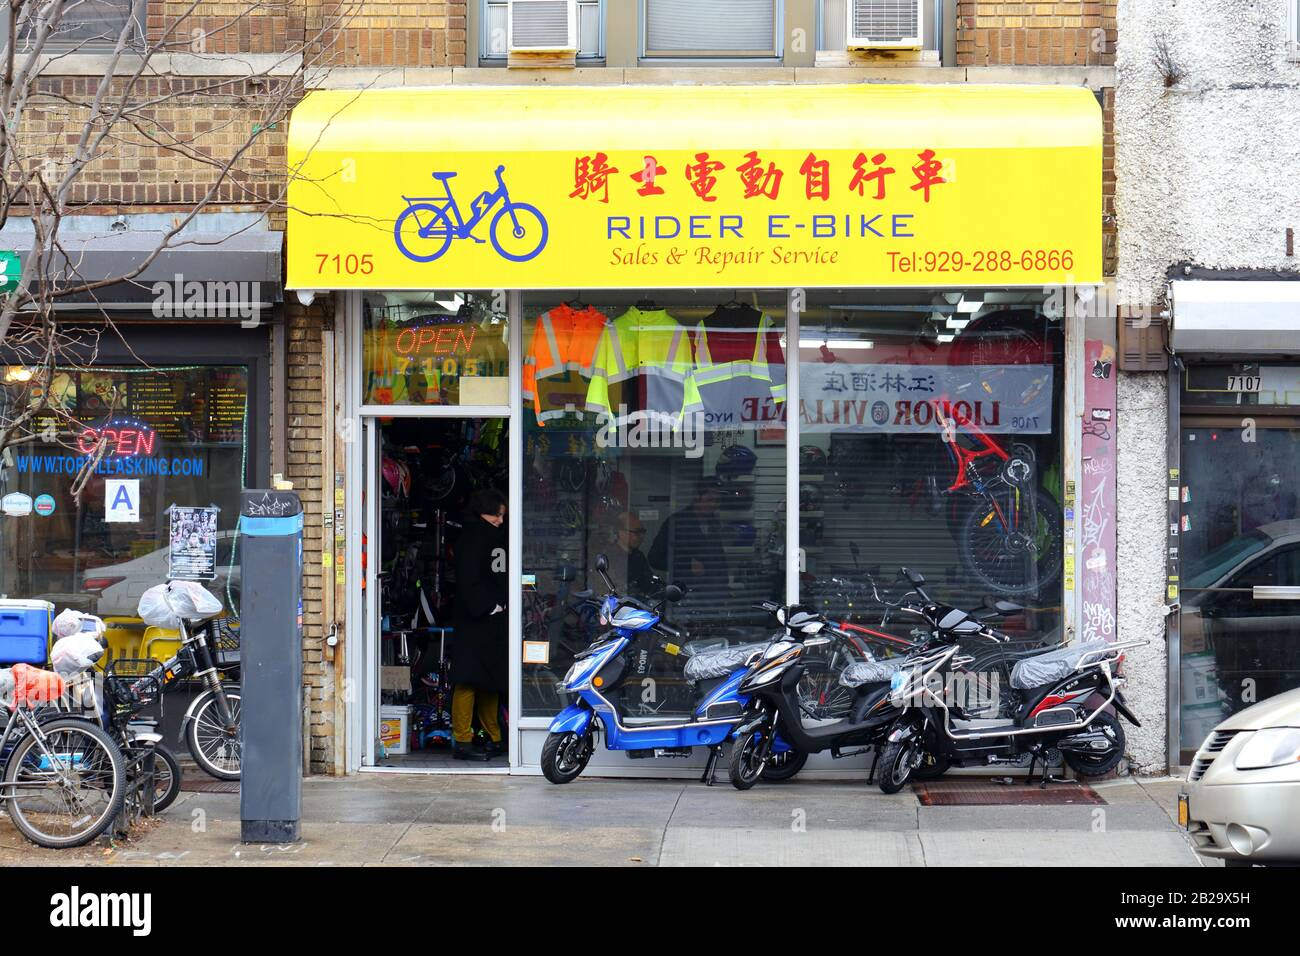 Rider E Bike 7105 18th Ave Brooklyn Ny Exterior Storefront Of An Electric Scooter Store In Bensonhurst Stock Photo Alamy